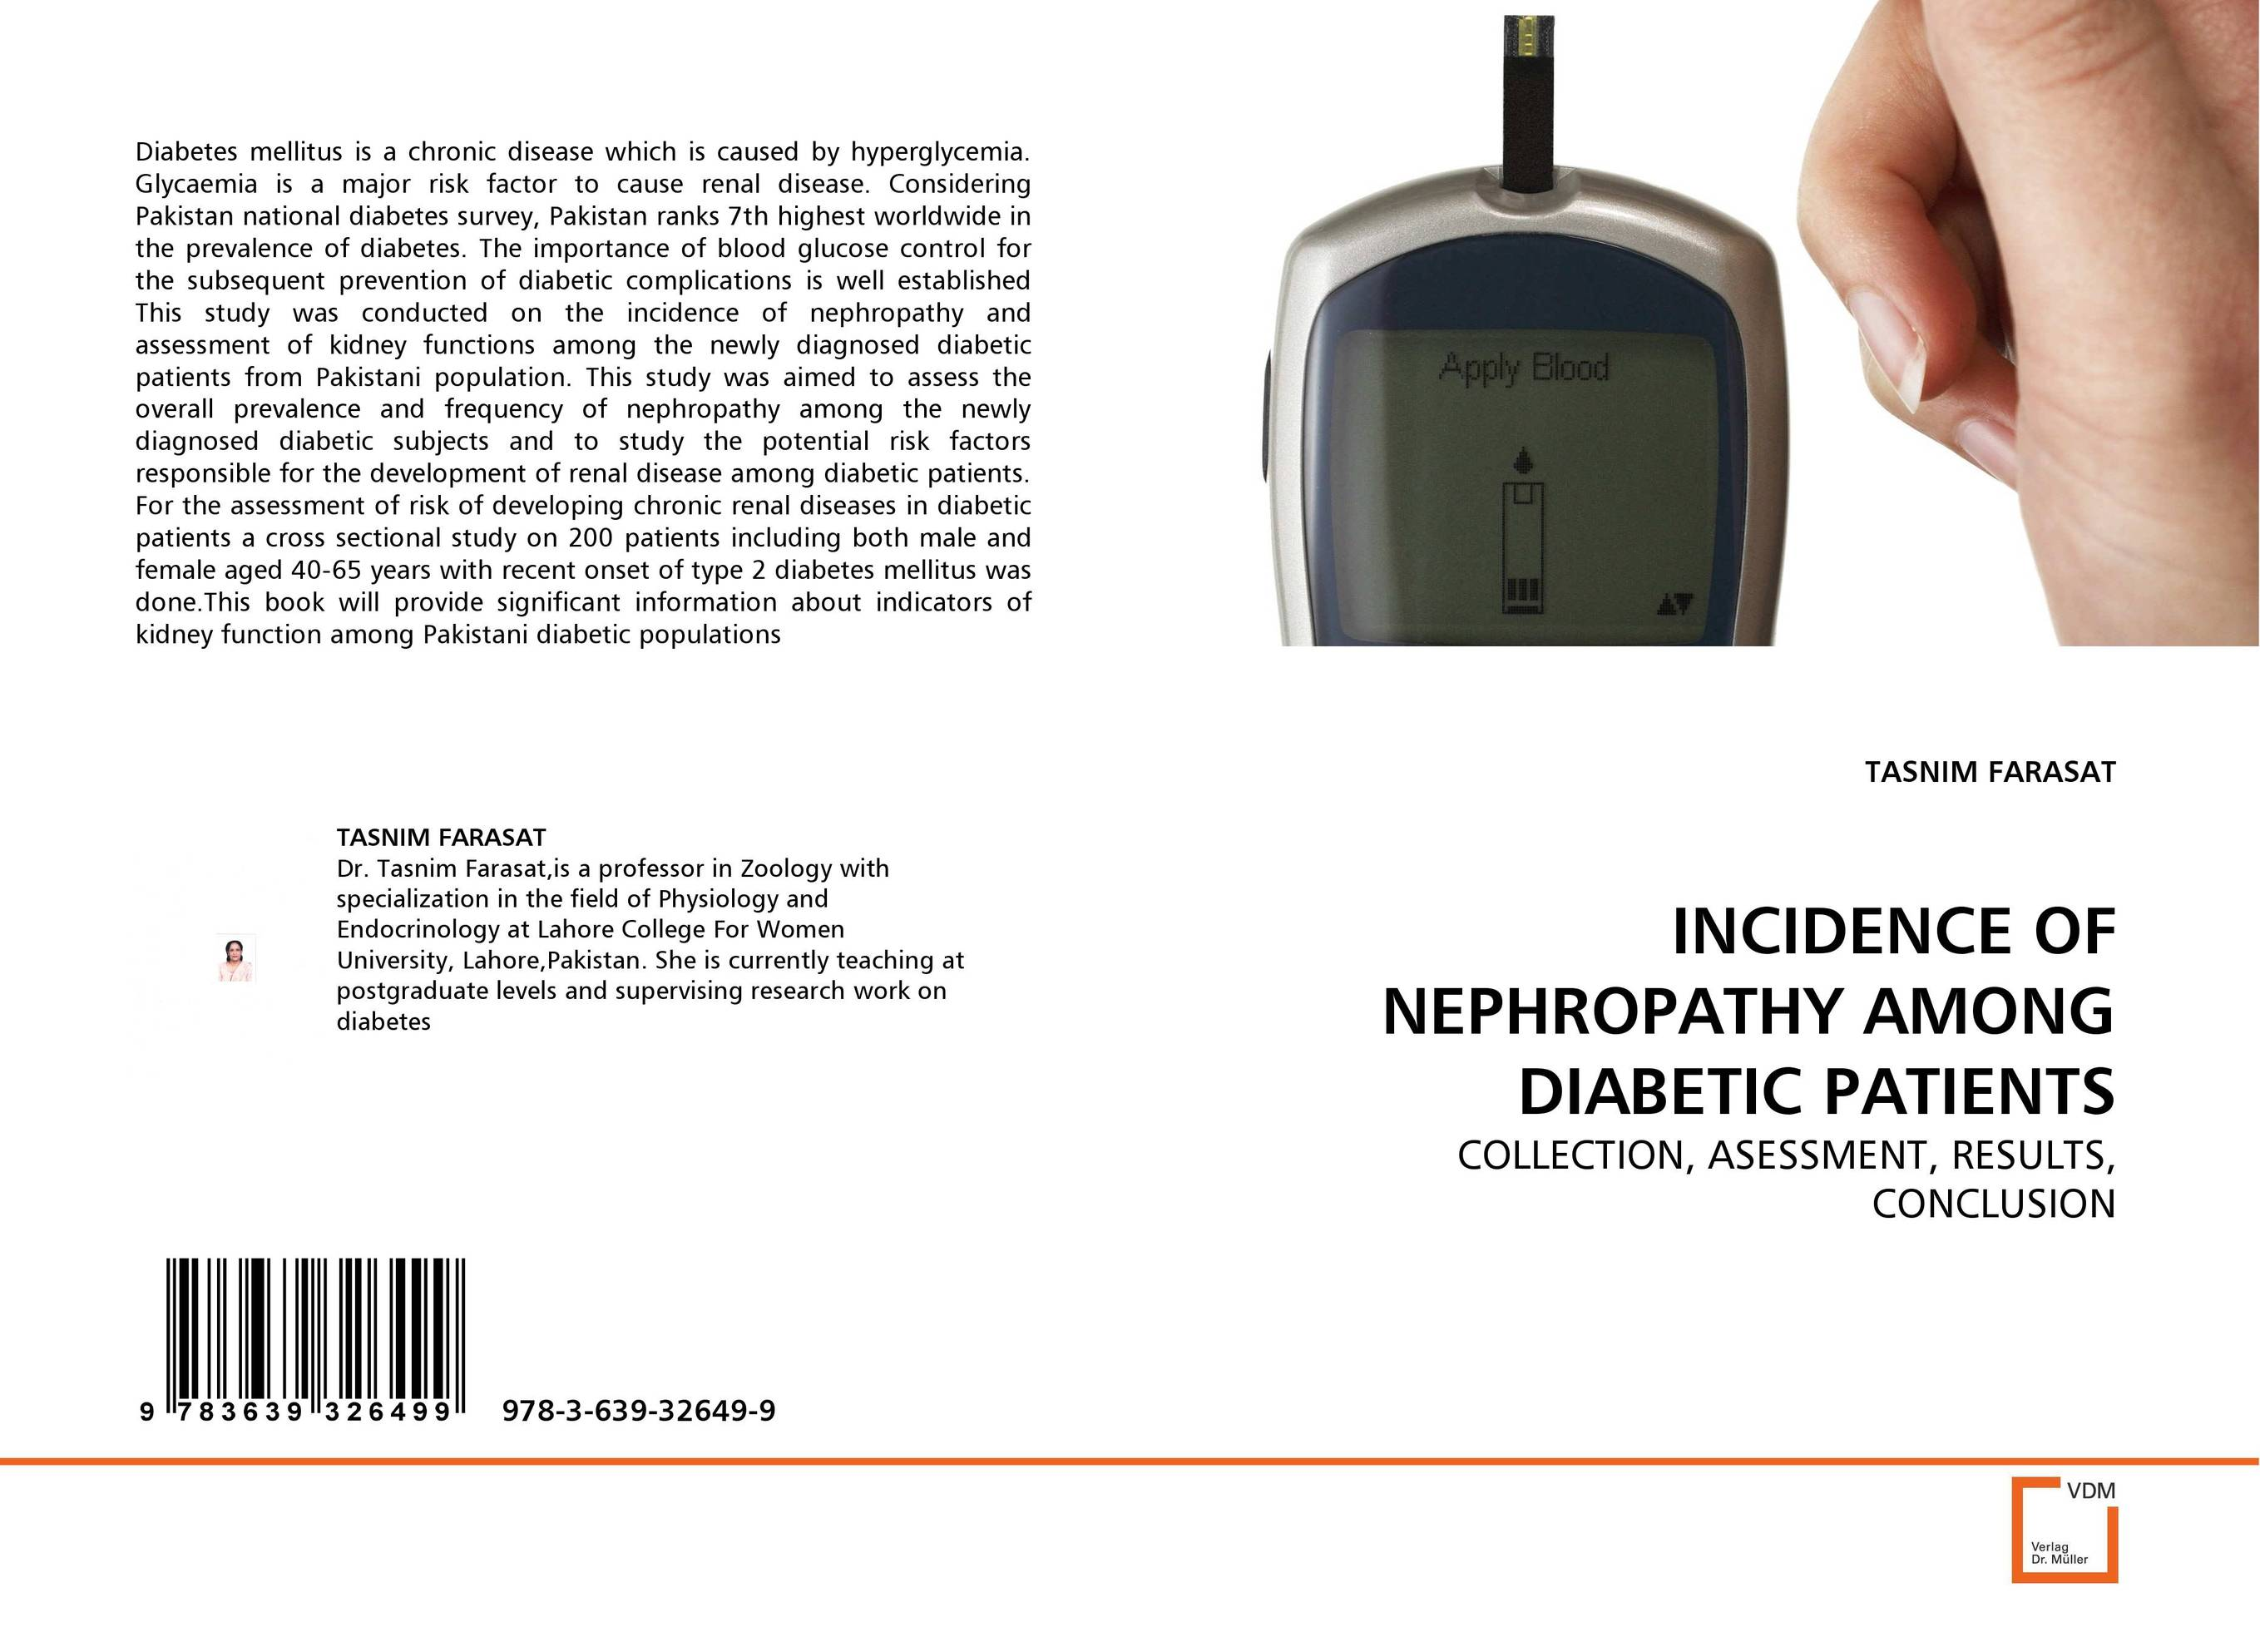 INCIDENCE OF NEPHROPATHY AMONG DIABETIC PATIENTS prevalence of intestinal parasitosis among children